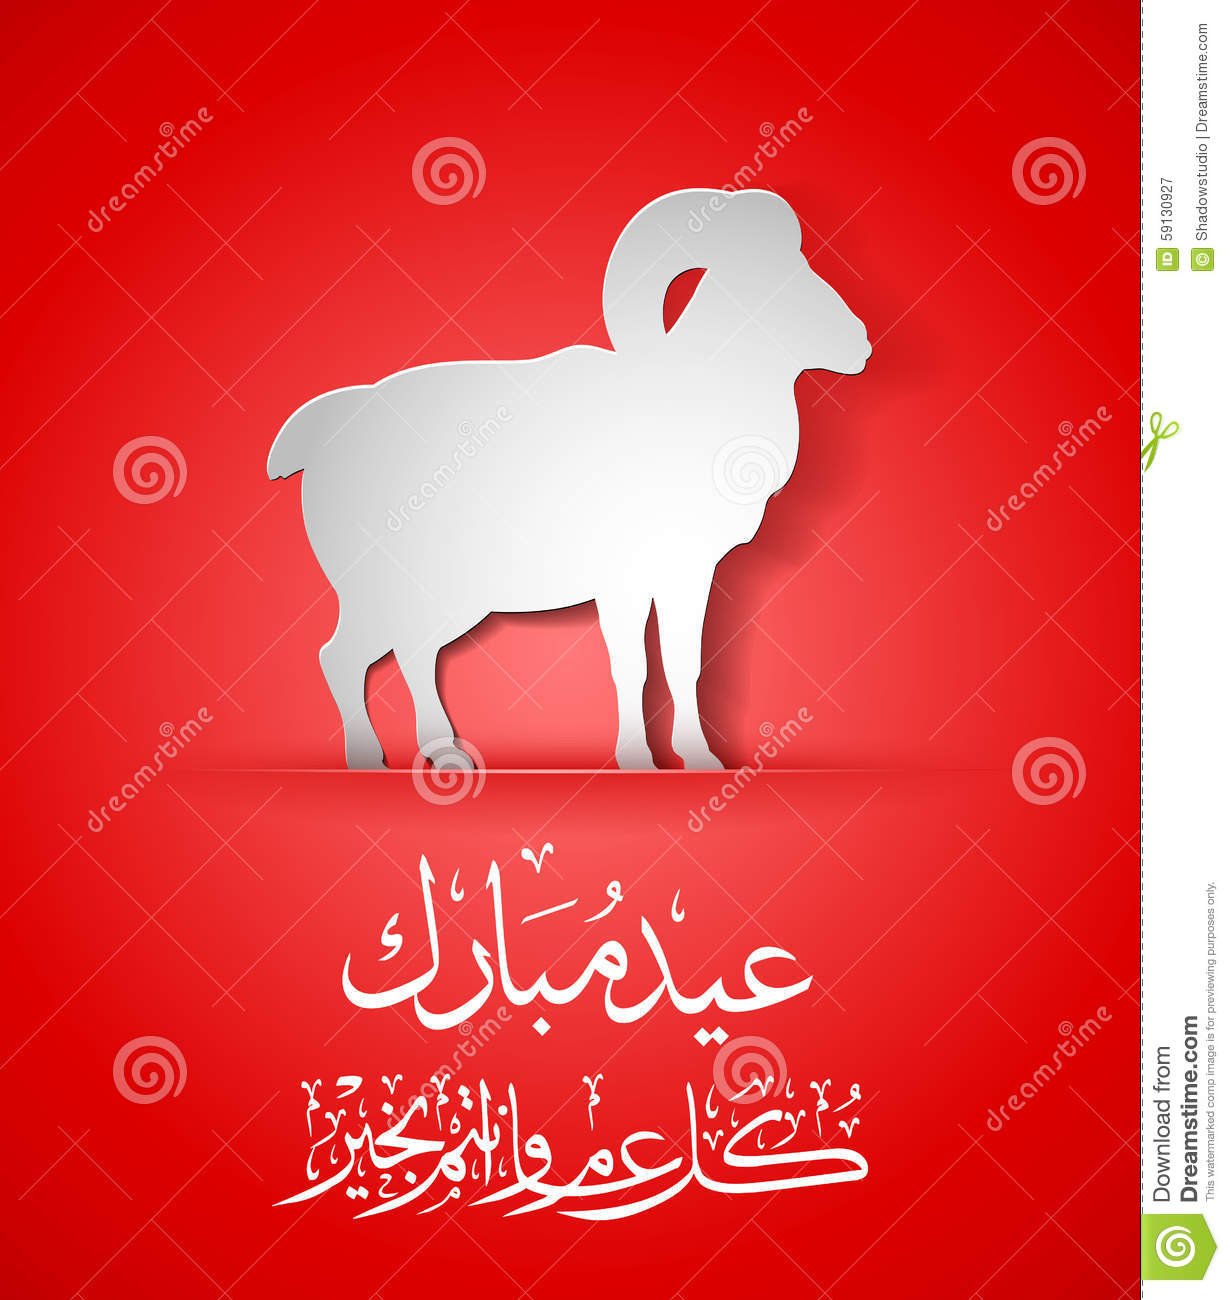 Eid Mubarak Eid Al Adha Stock Vector Illustration Of Sheep 59130927